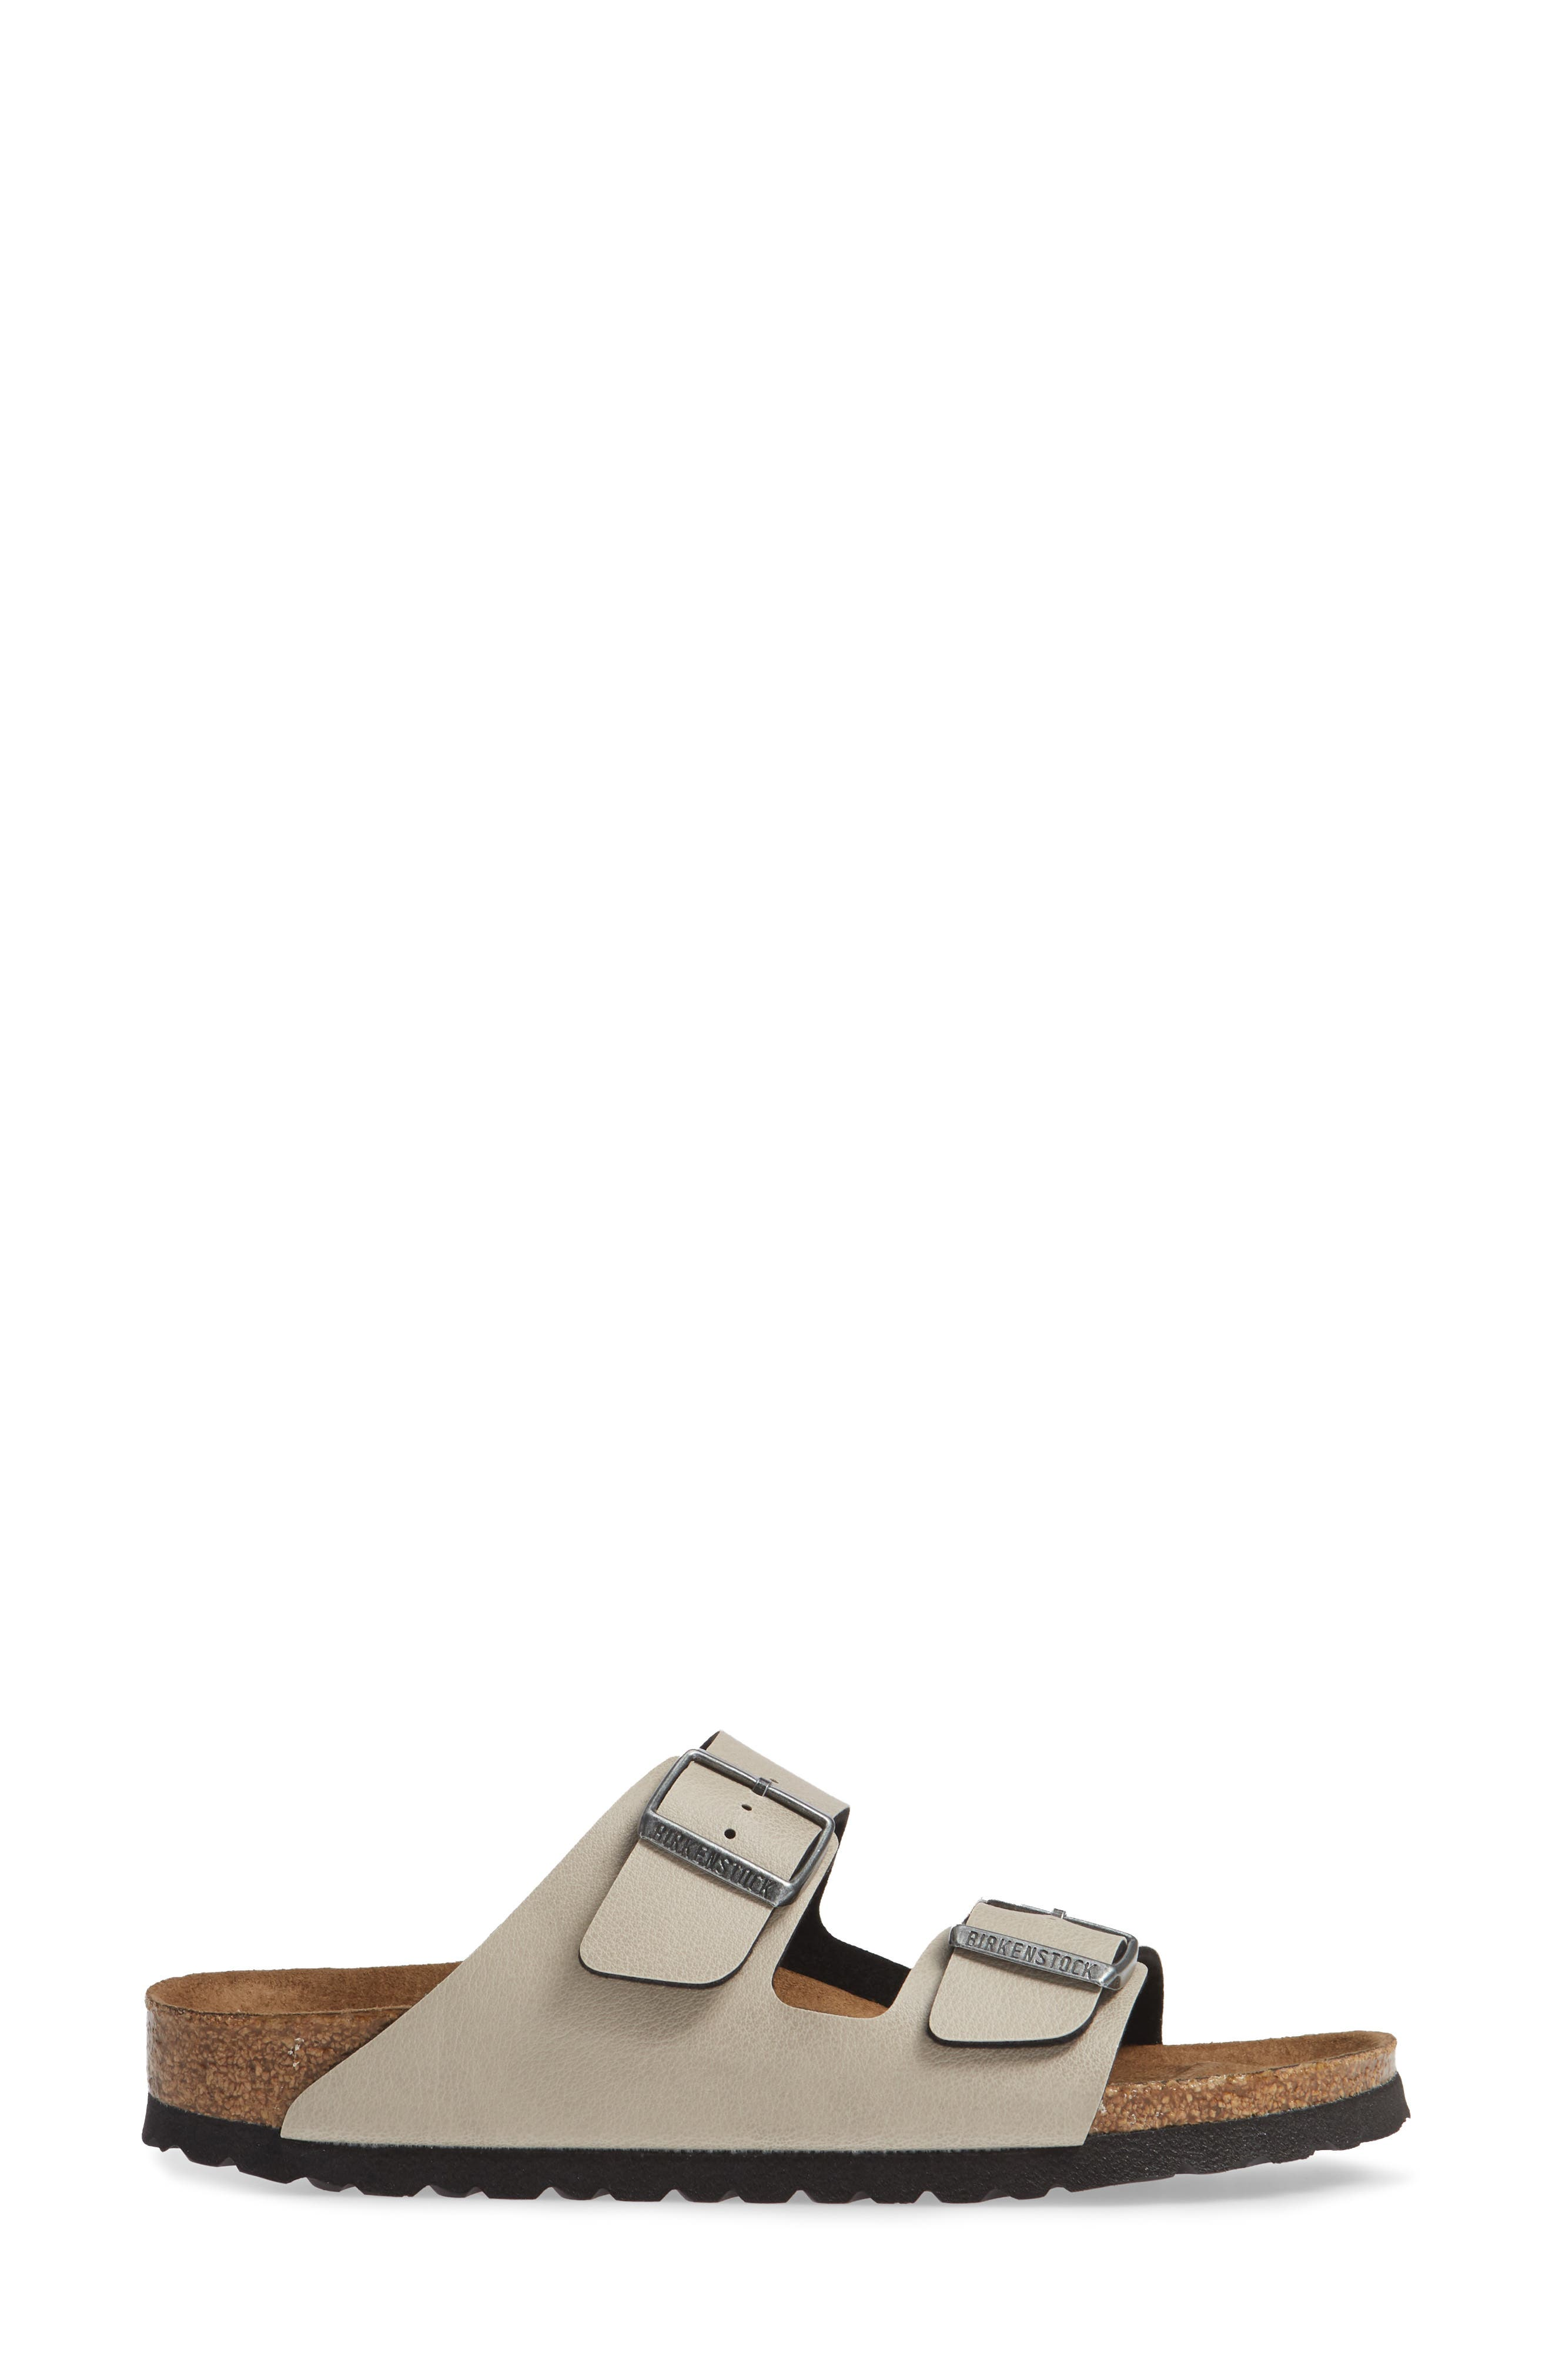 Arizona Birko-Flor<sup>™</sup> Slide Sandal,                             Alternate thumbnail 3, color,                             PULL UP STONE FAUX LEATHER